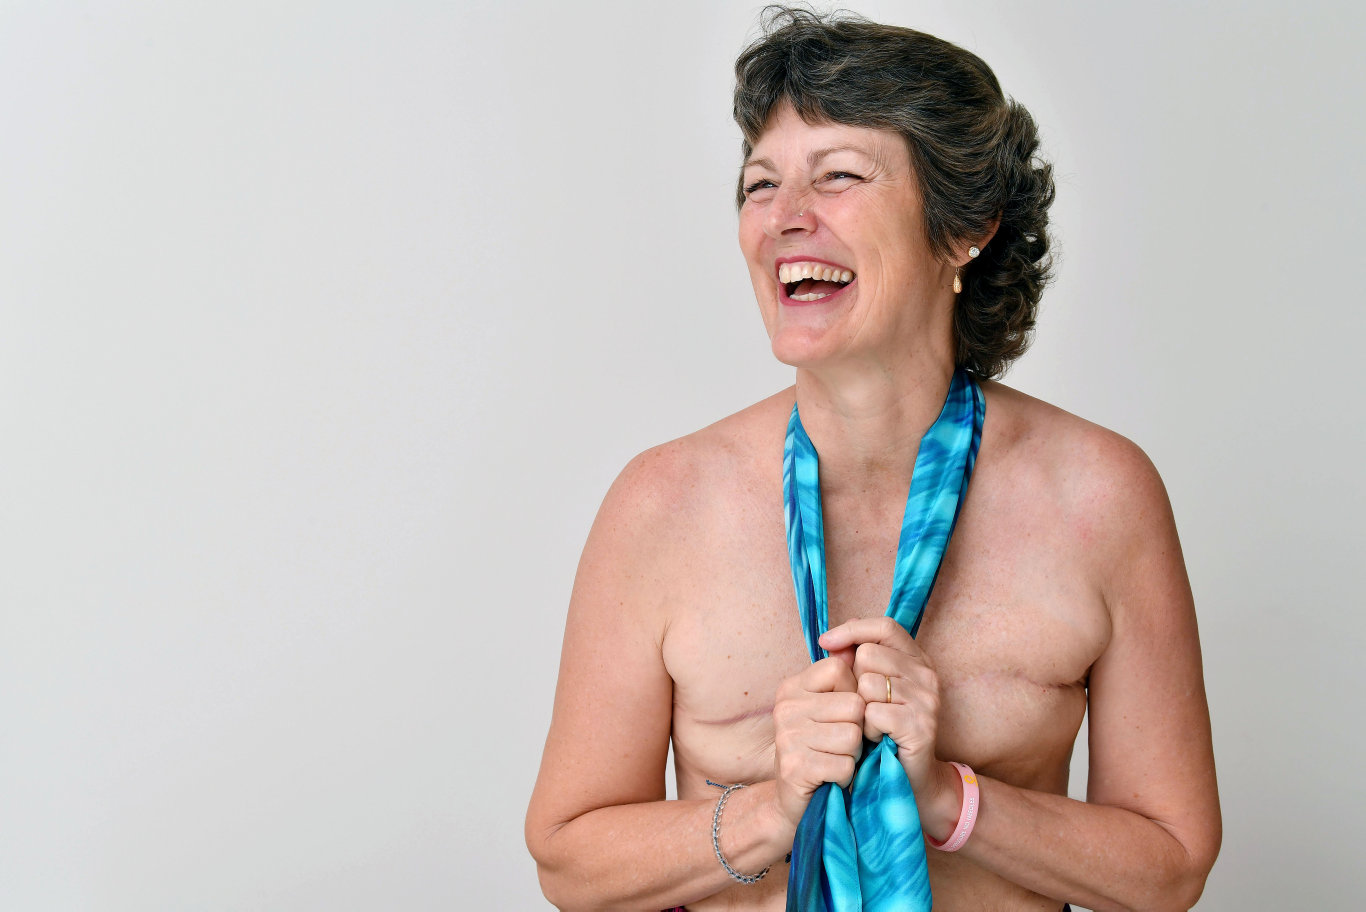 Tiana Fry, who had a double mastectomy talks about her life following cancer treatment. Picture: Tony Martin